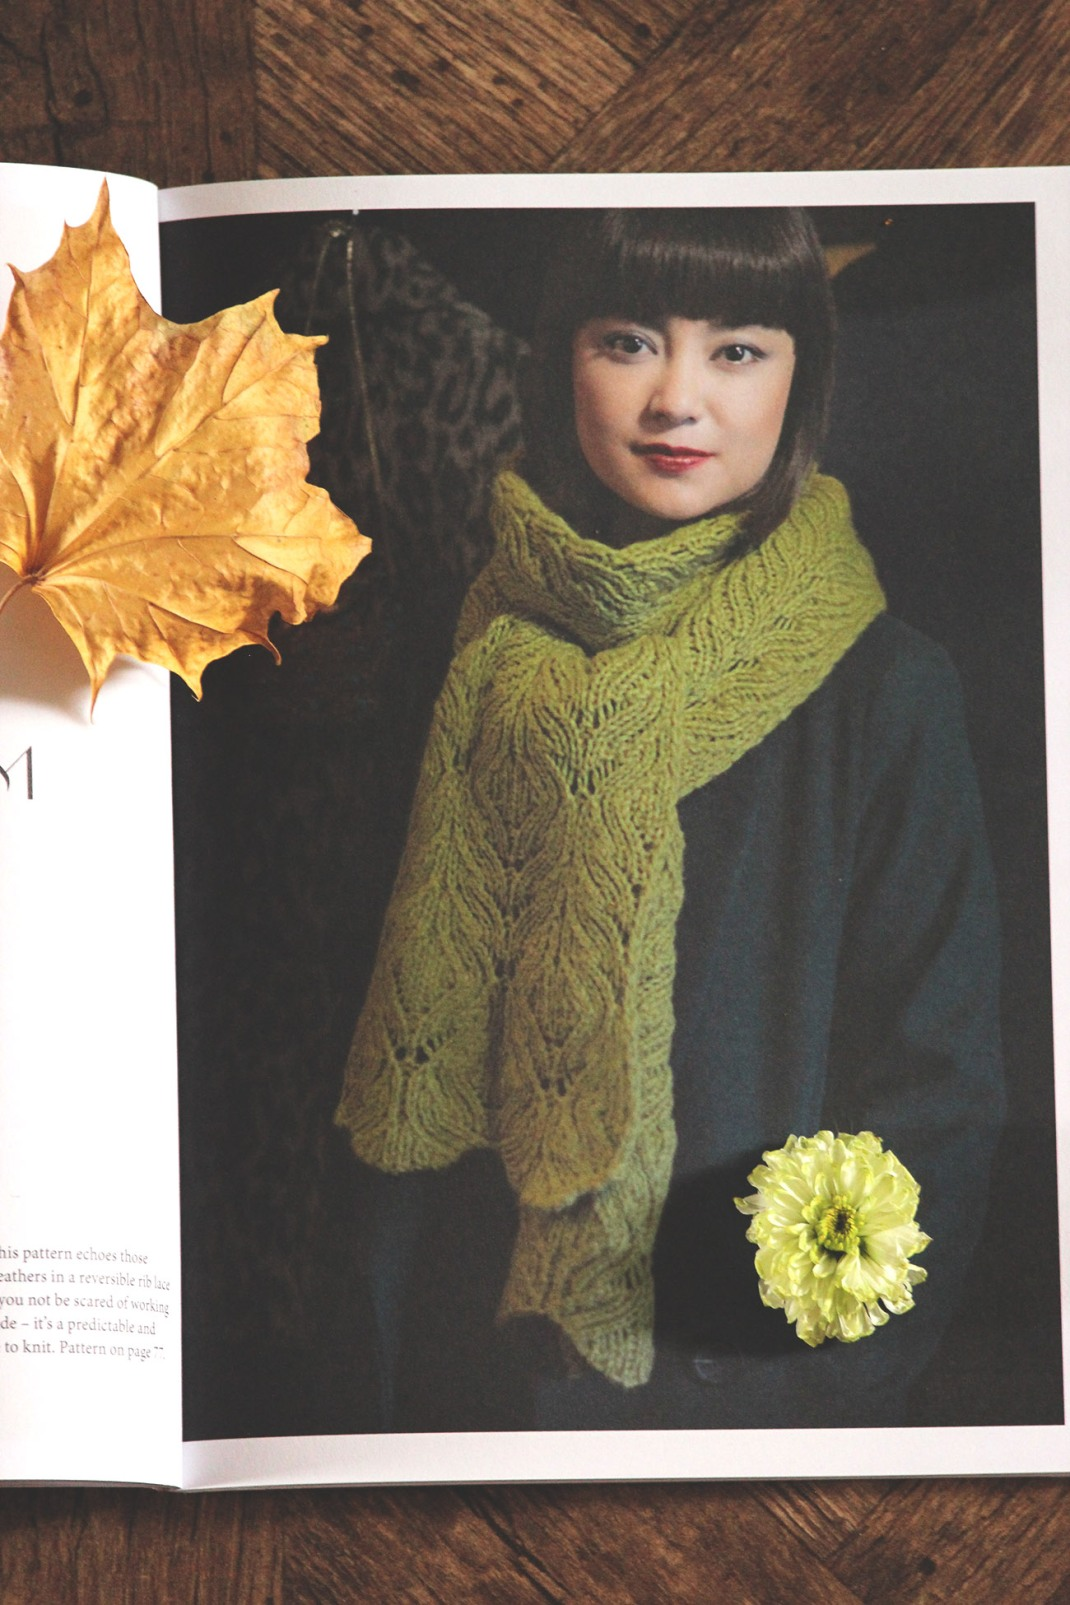 Pompom quarterly issue 15 Winter 2015 PurPle Laines (4)